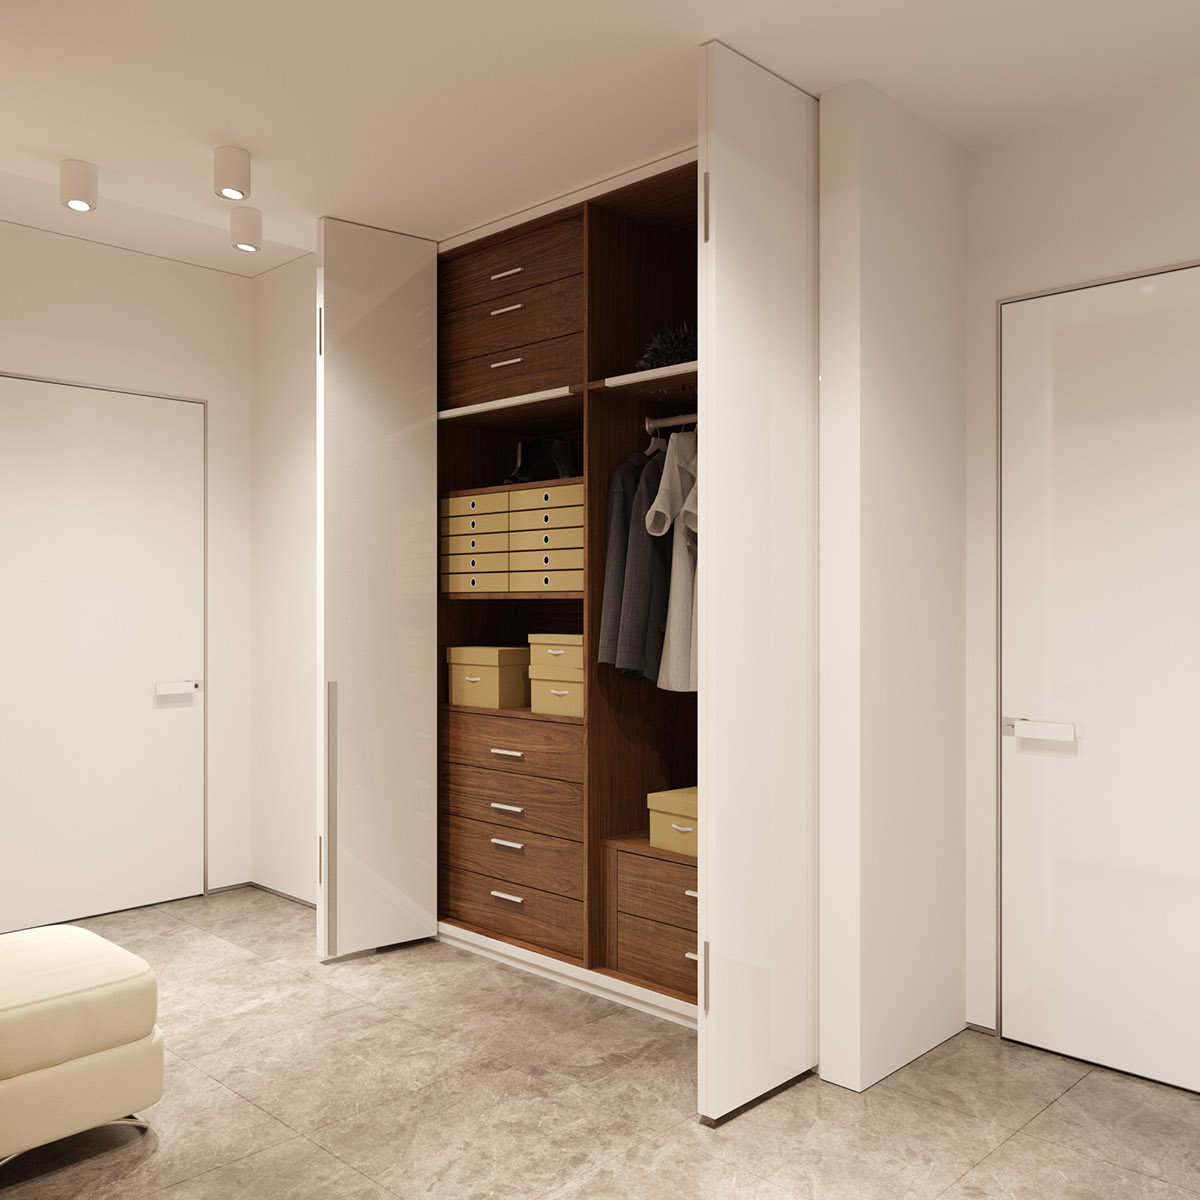 Organized Closet - 3 examples of modern simplicity